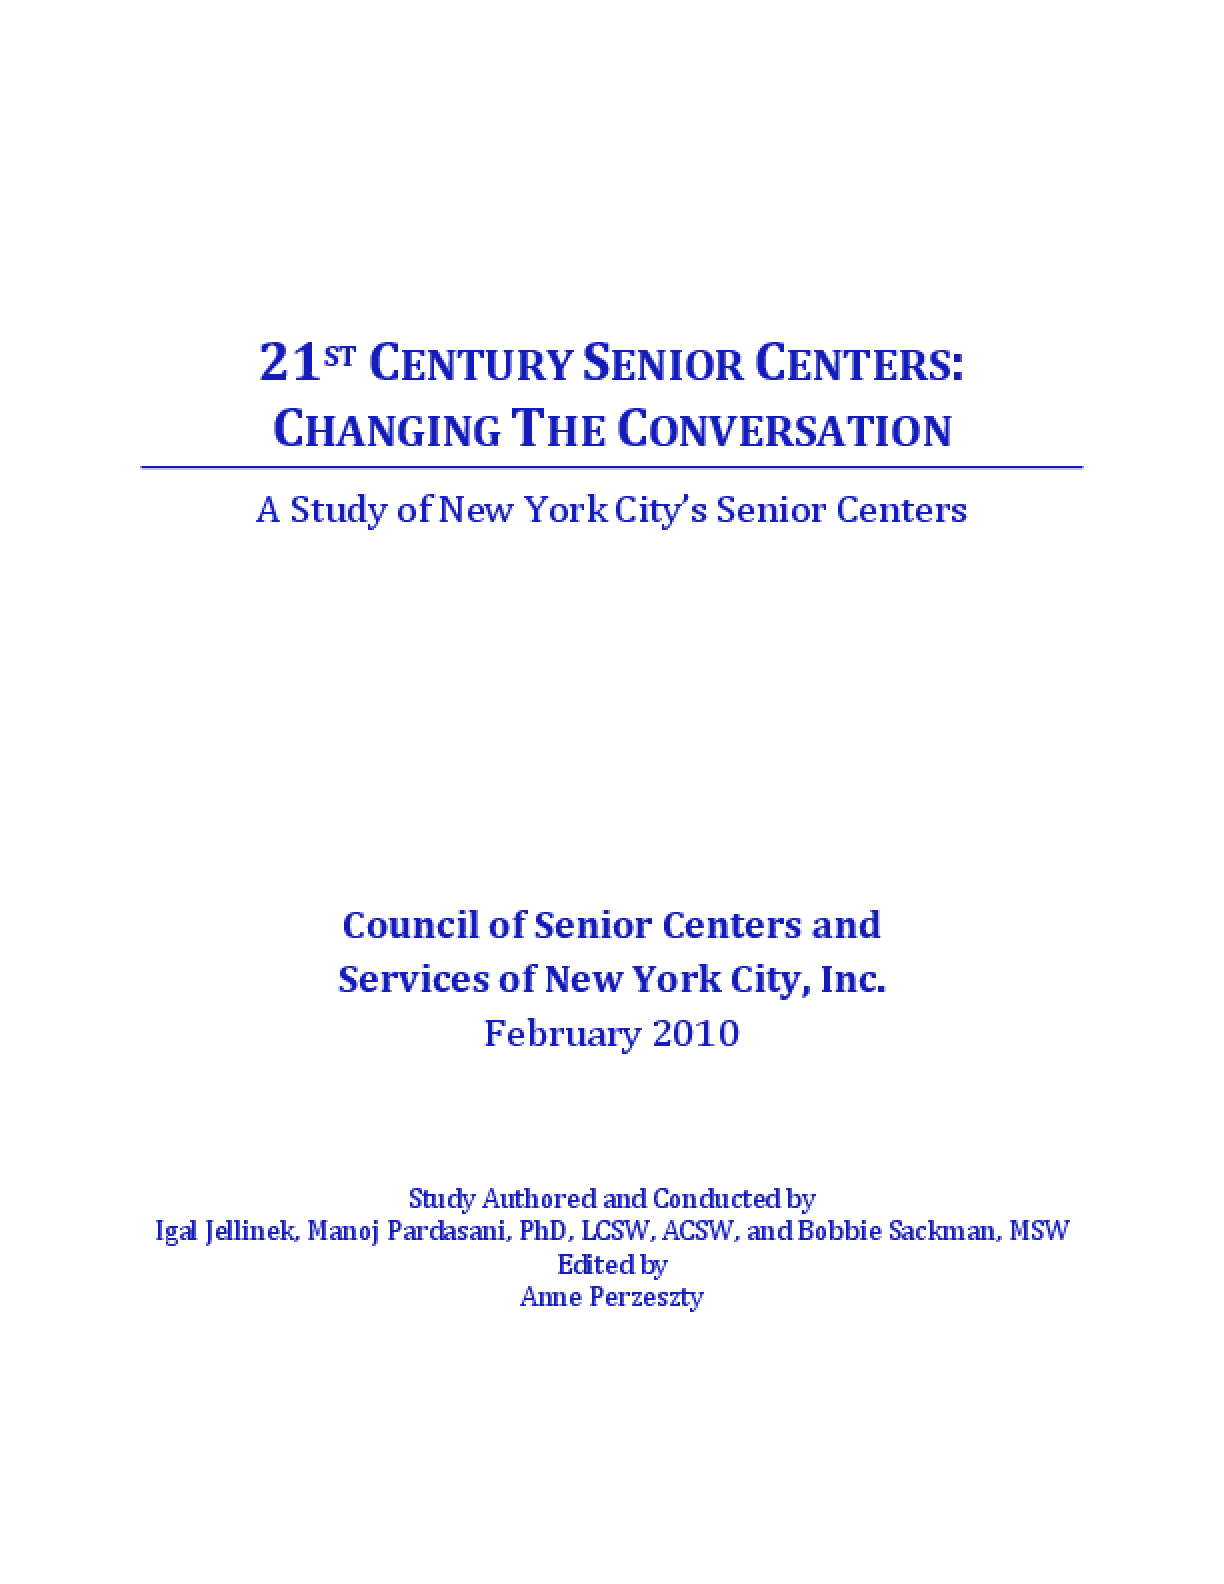 21st Century Senior Centers: Changing the Conversation